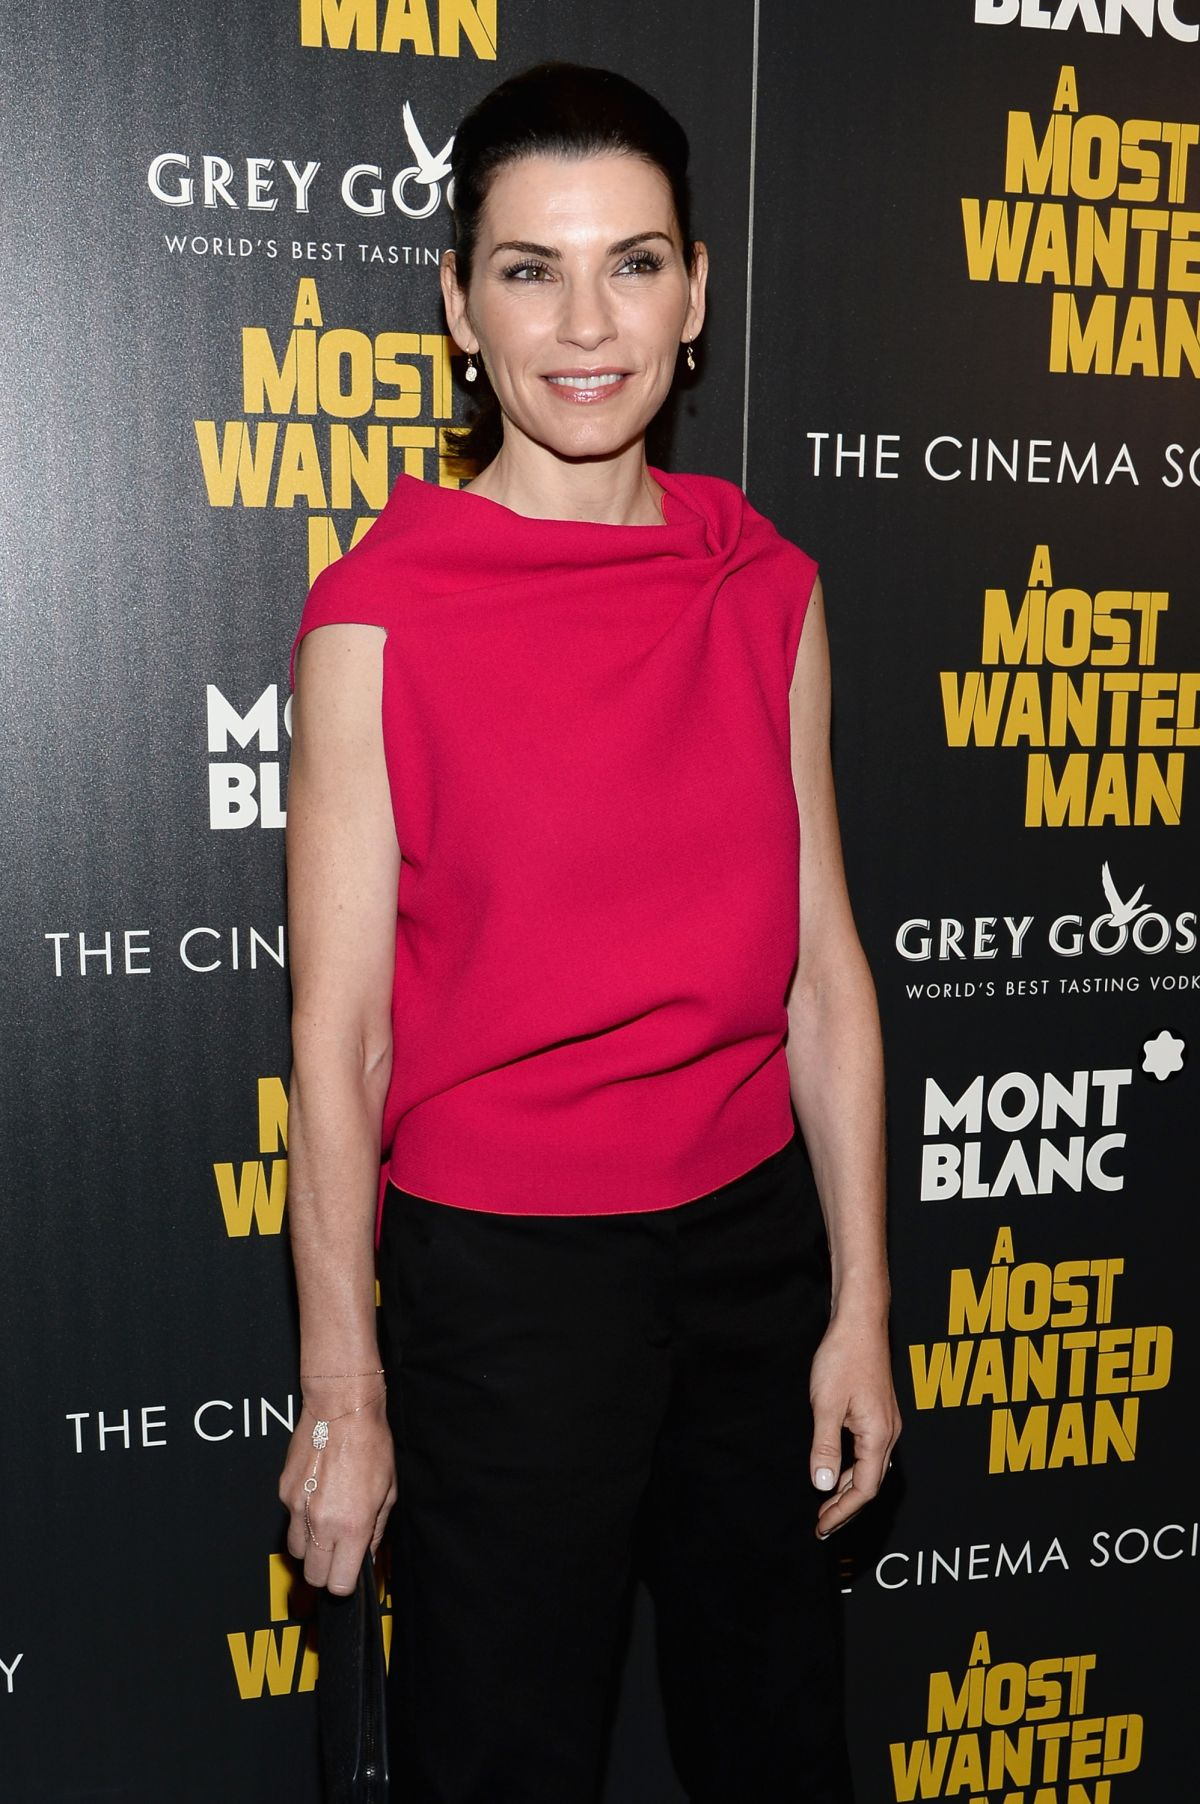 JULIANNA MARGUILES at A Most Wanted Man Premiere in New York